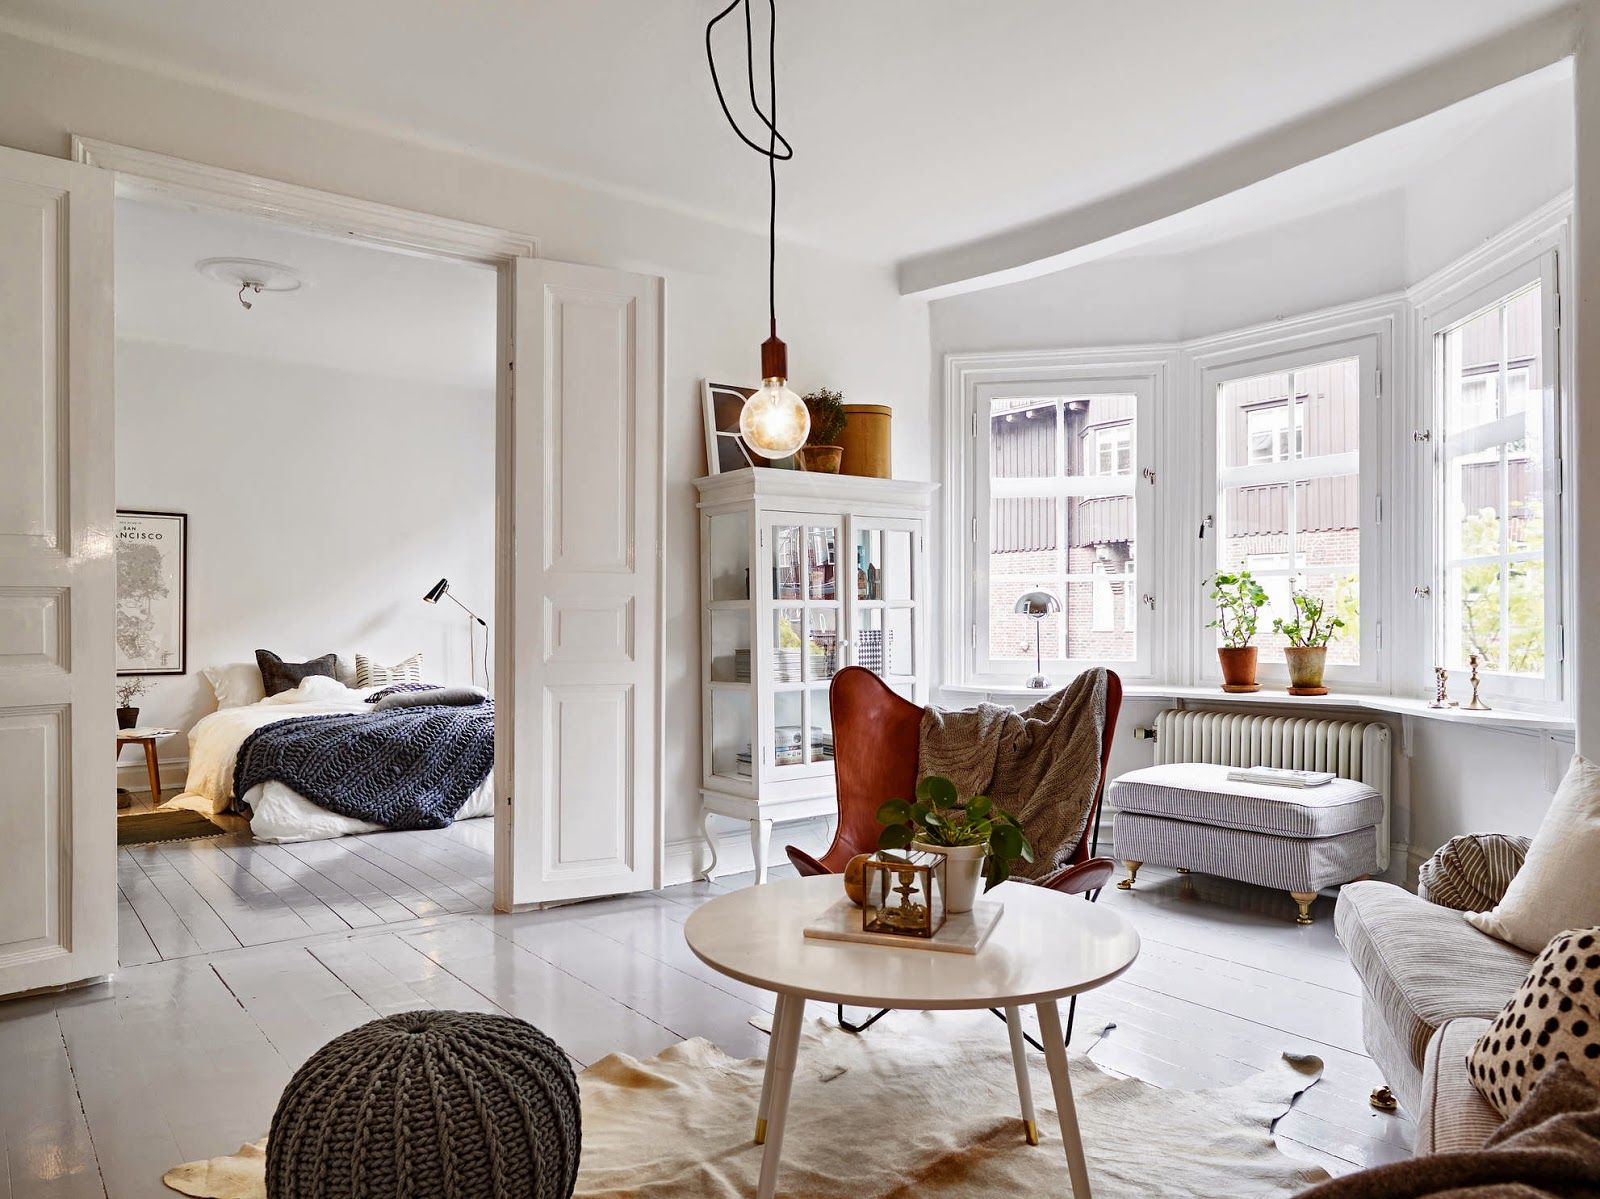 A swedish apartment with a cosy bed and glossy grey floor